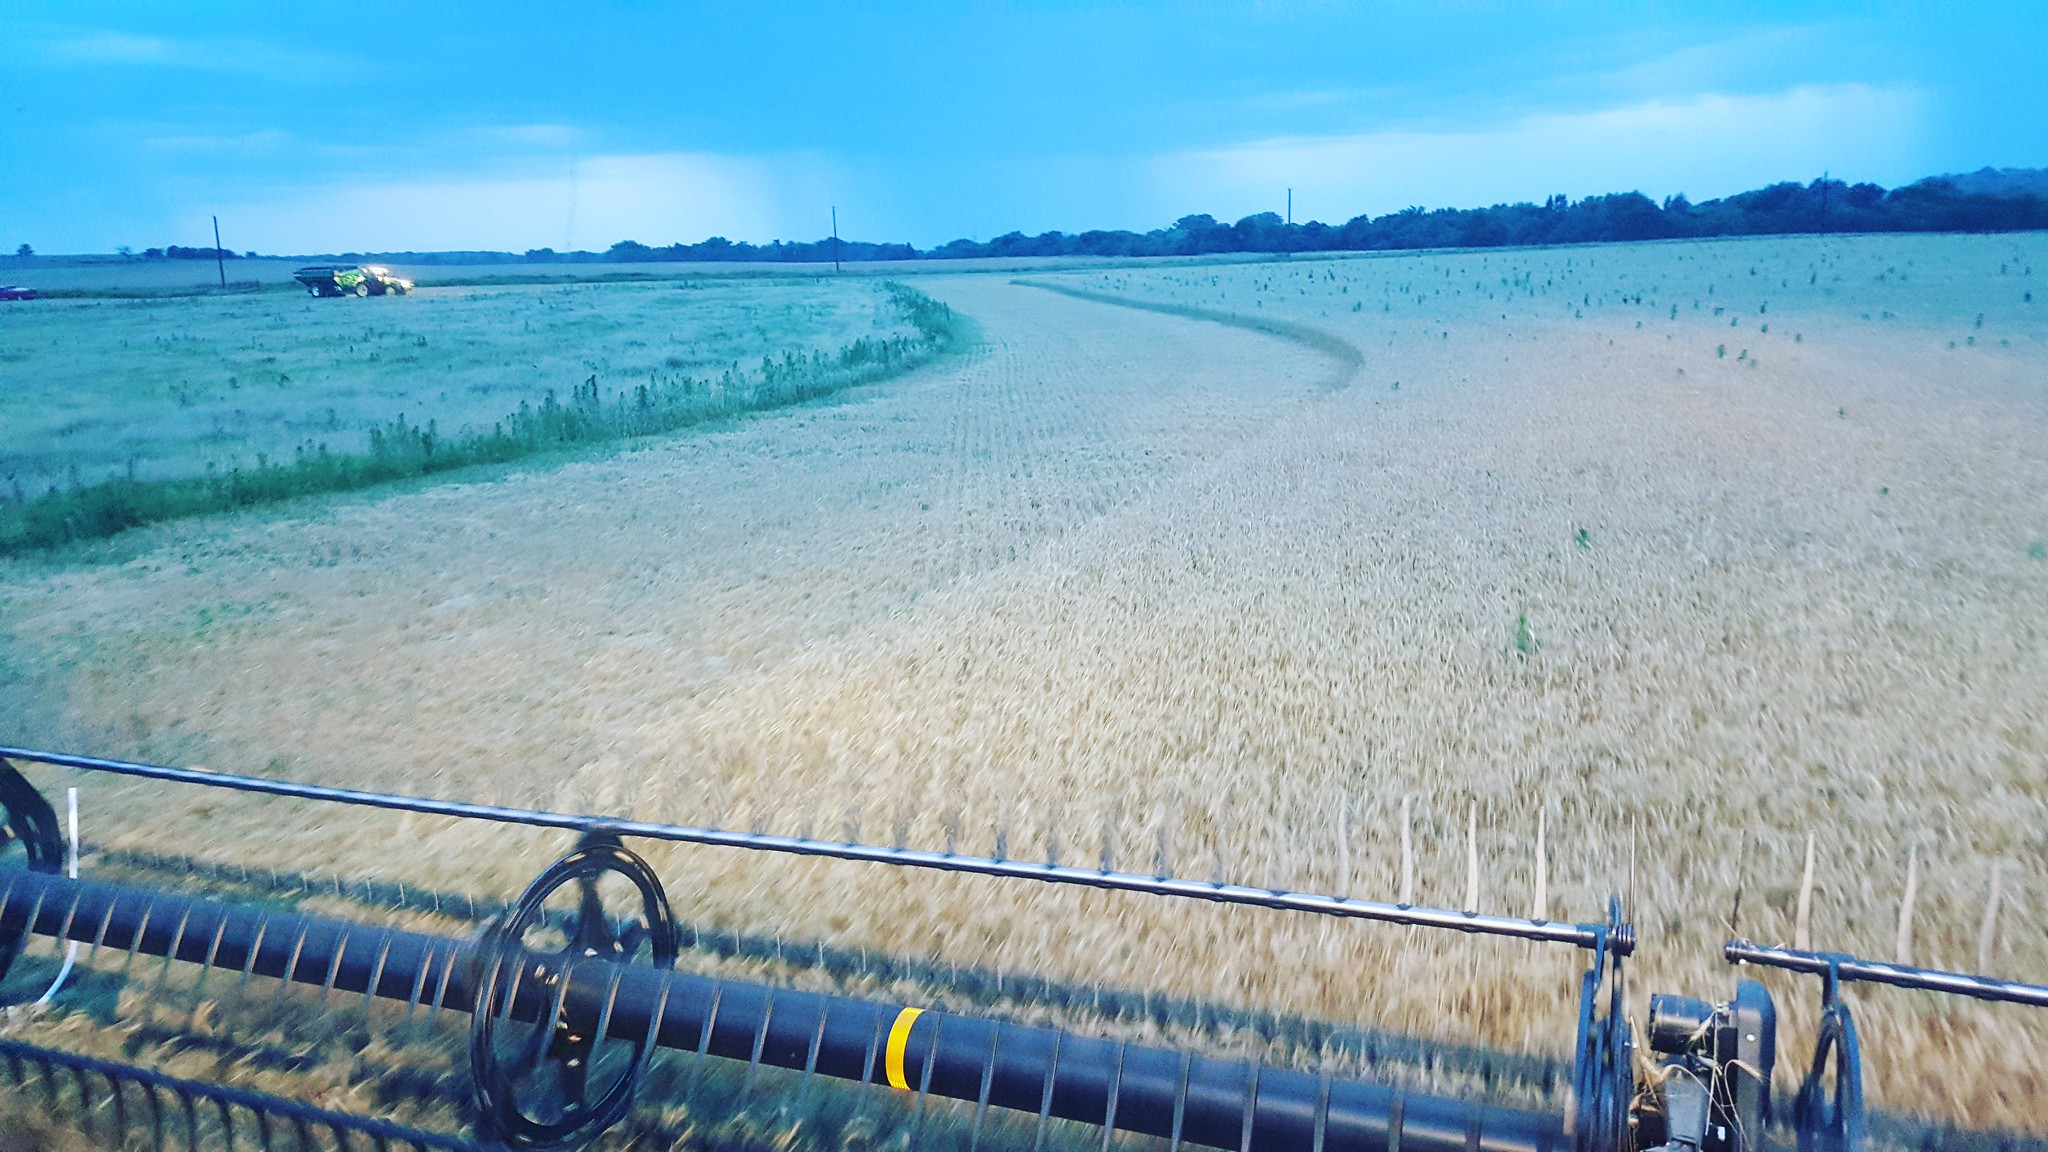 Schemper 2017 - Oklahoma Wheat Harvest